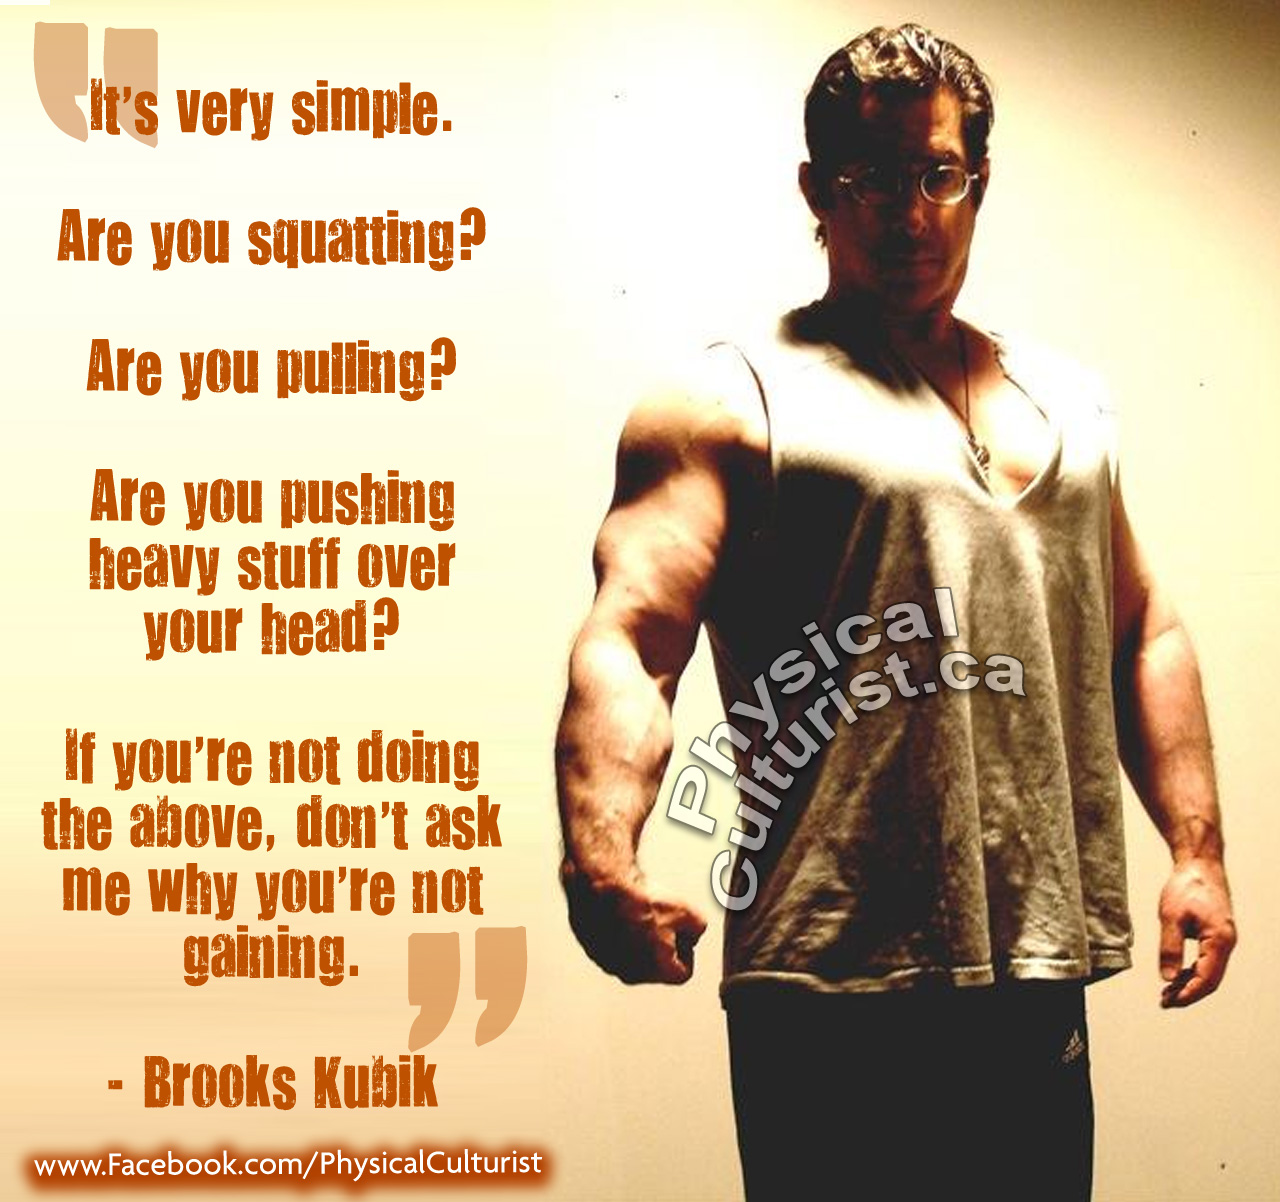 brooks kubik quote It's very simple.   Are you squatting?   Are you pulling?  Are you pushing heavy stuff over your head?  If you're not doing the above, don't ask me why you're not gaining.